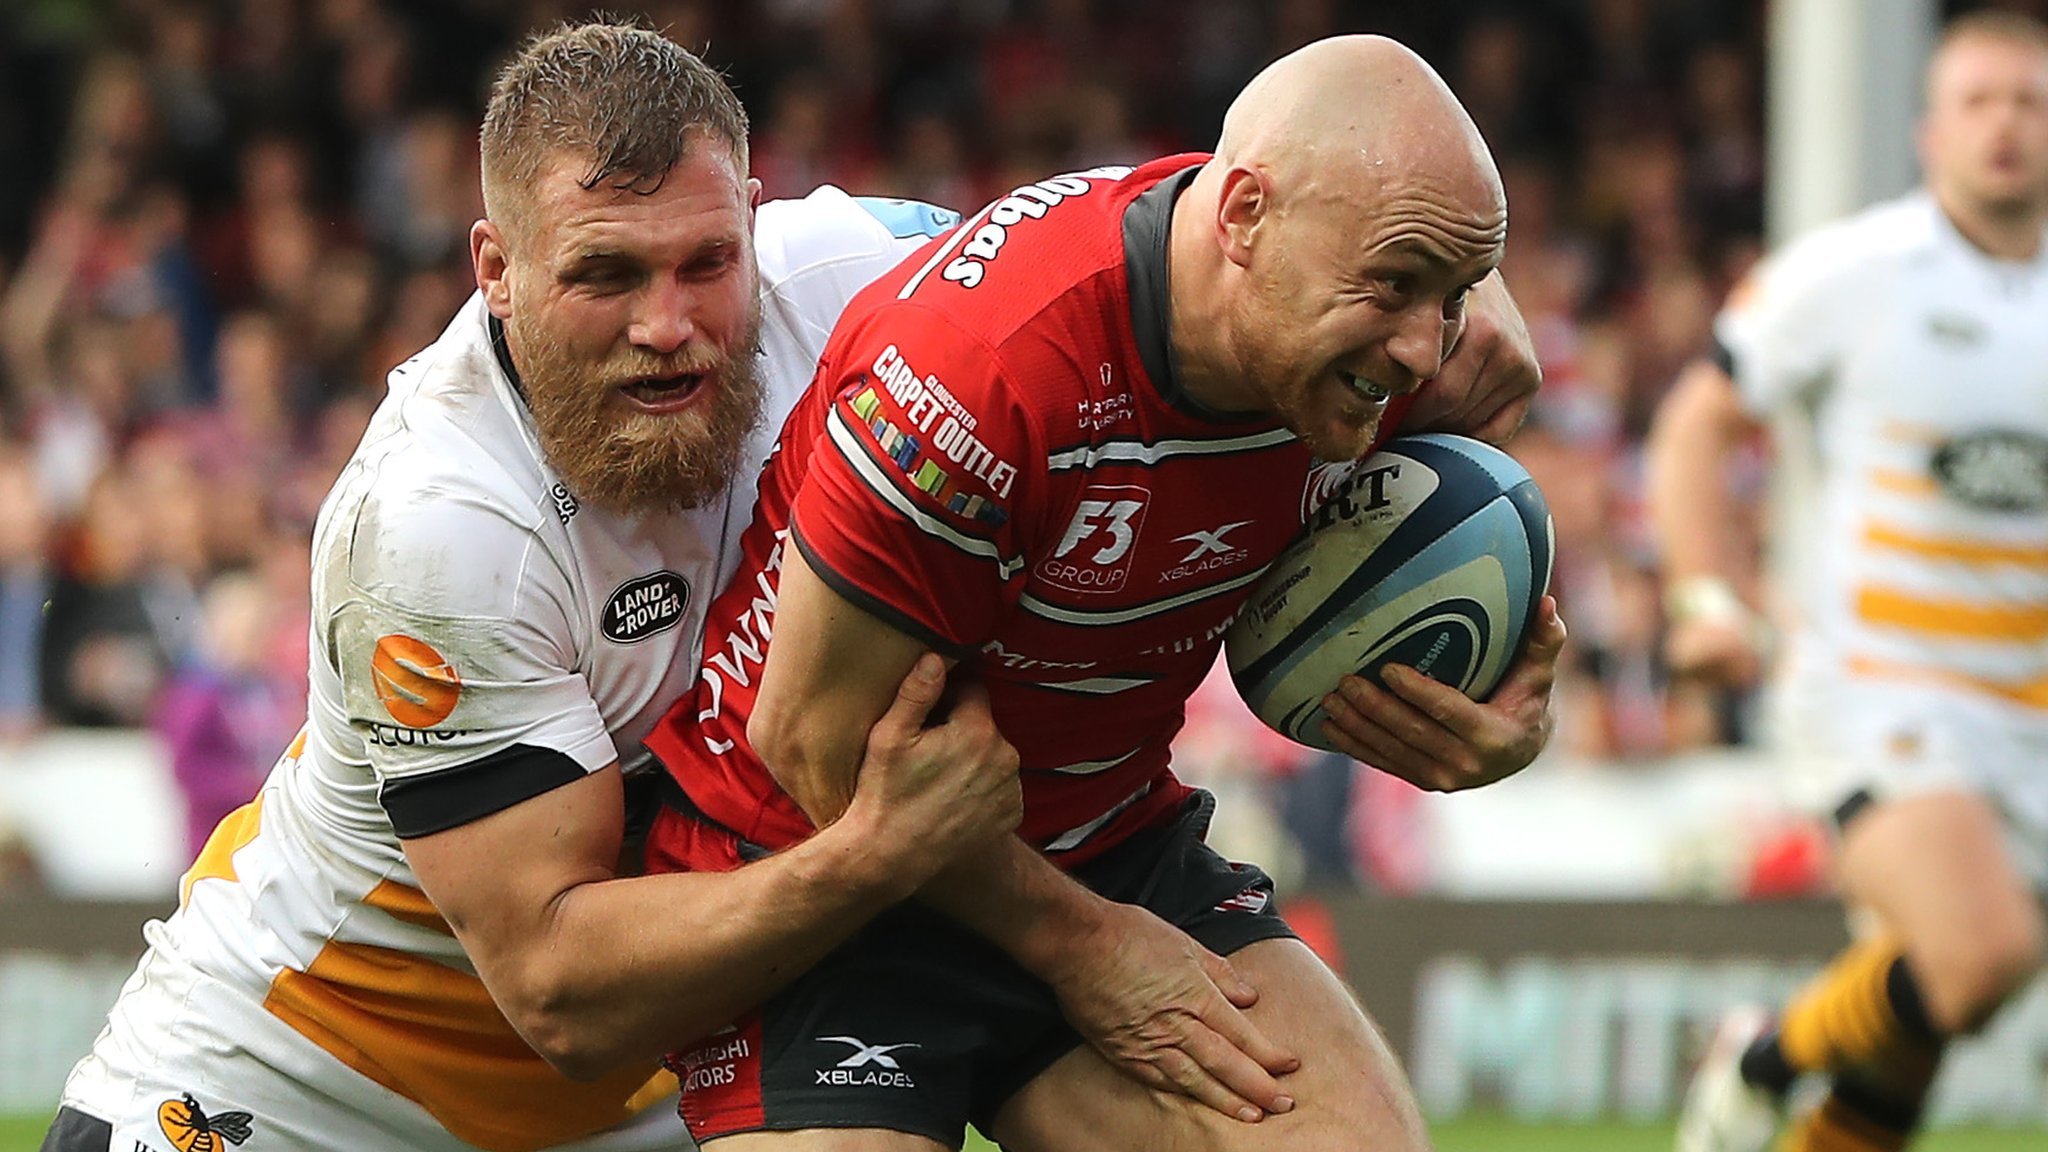 Gloucester 27-14 Wasps: Flurry of first-half points helps Gloucester to victory